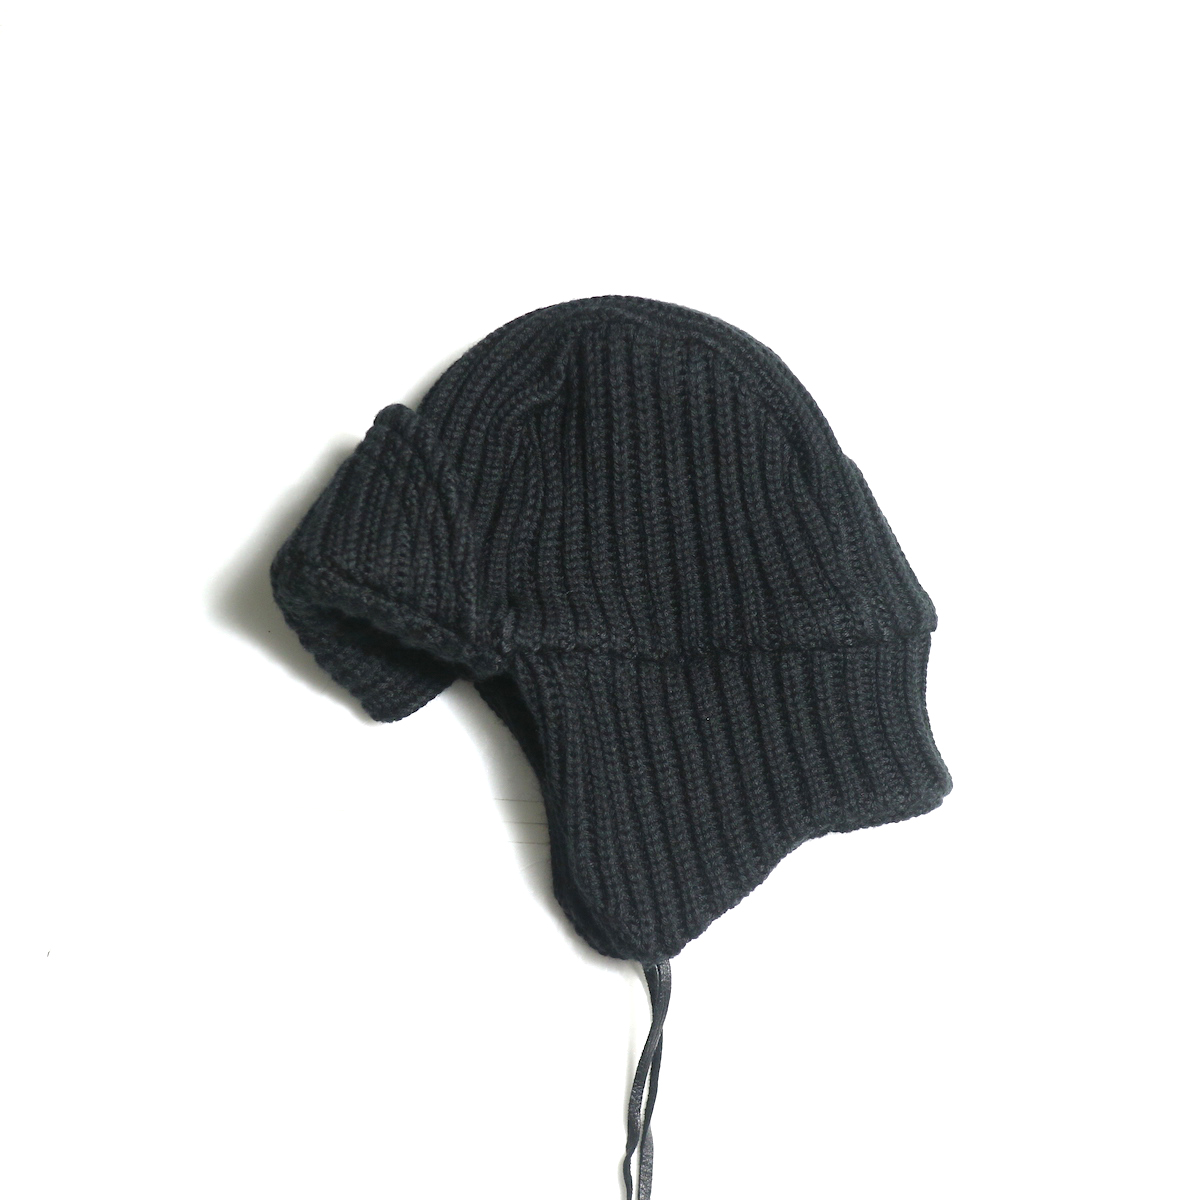 SOUTH2 WEST8 / Bomber Cap -W/A Knit